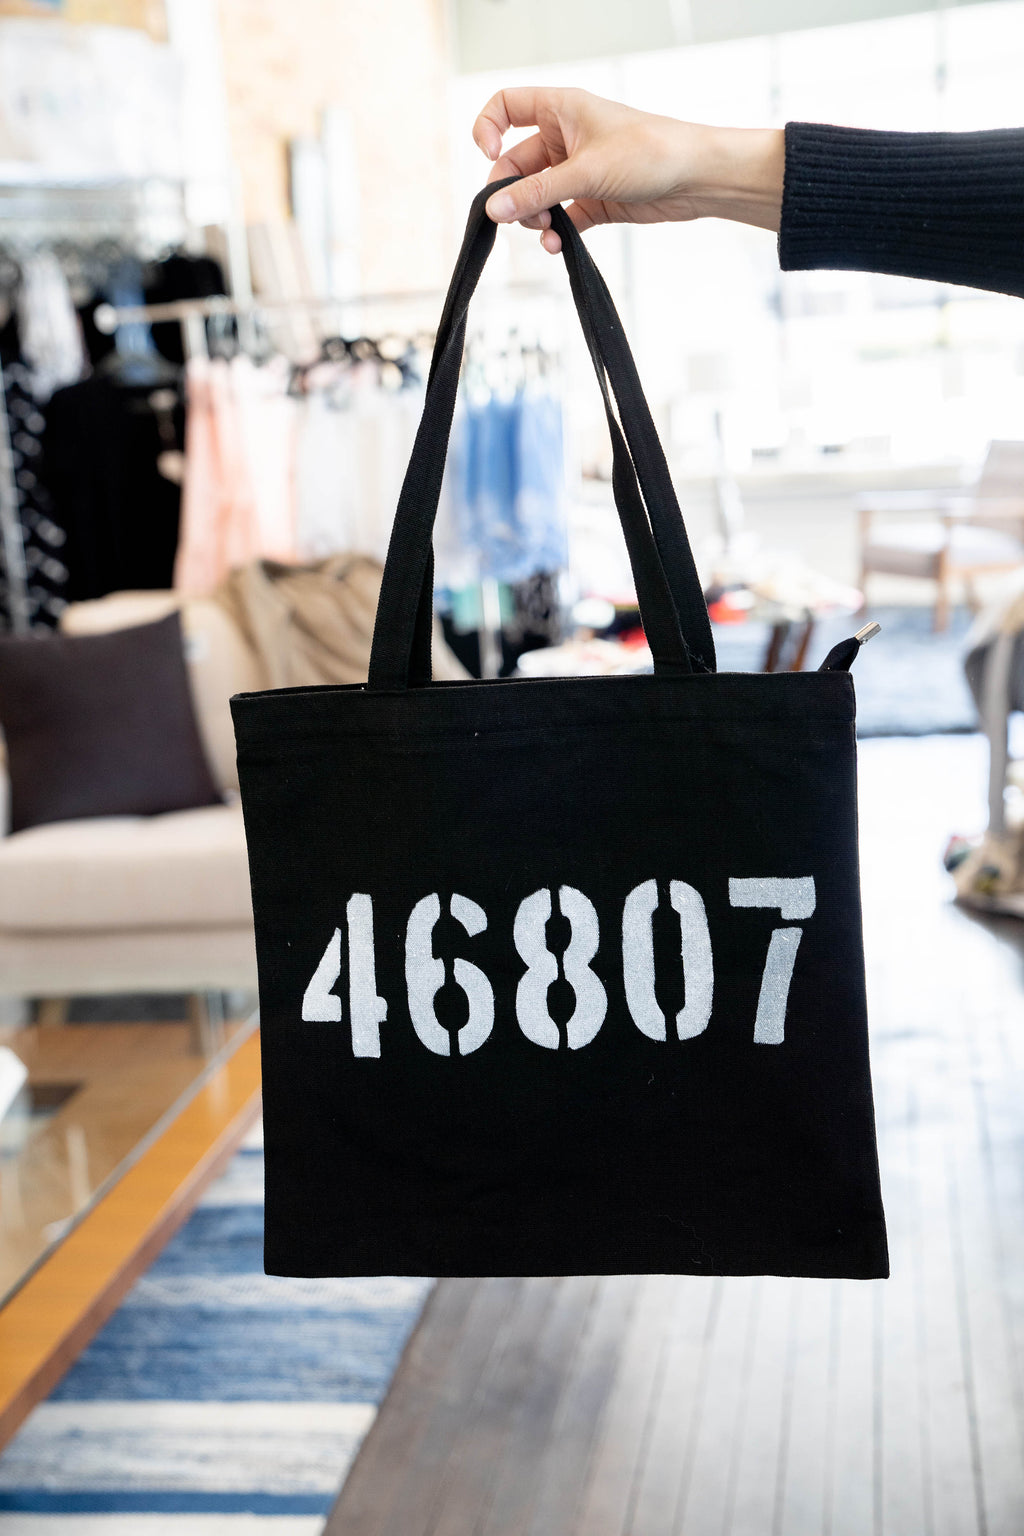 Zip Code Canvas Bags